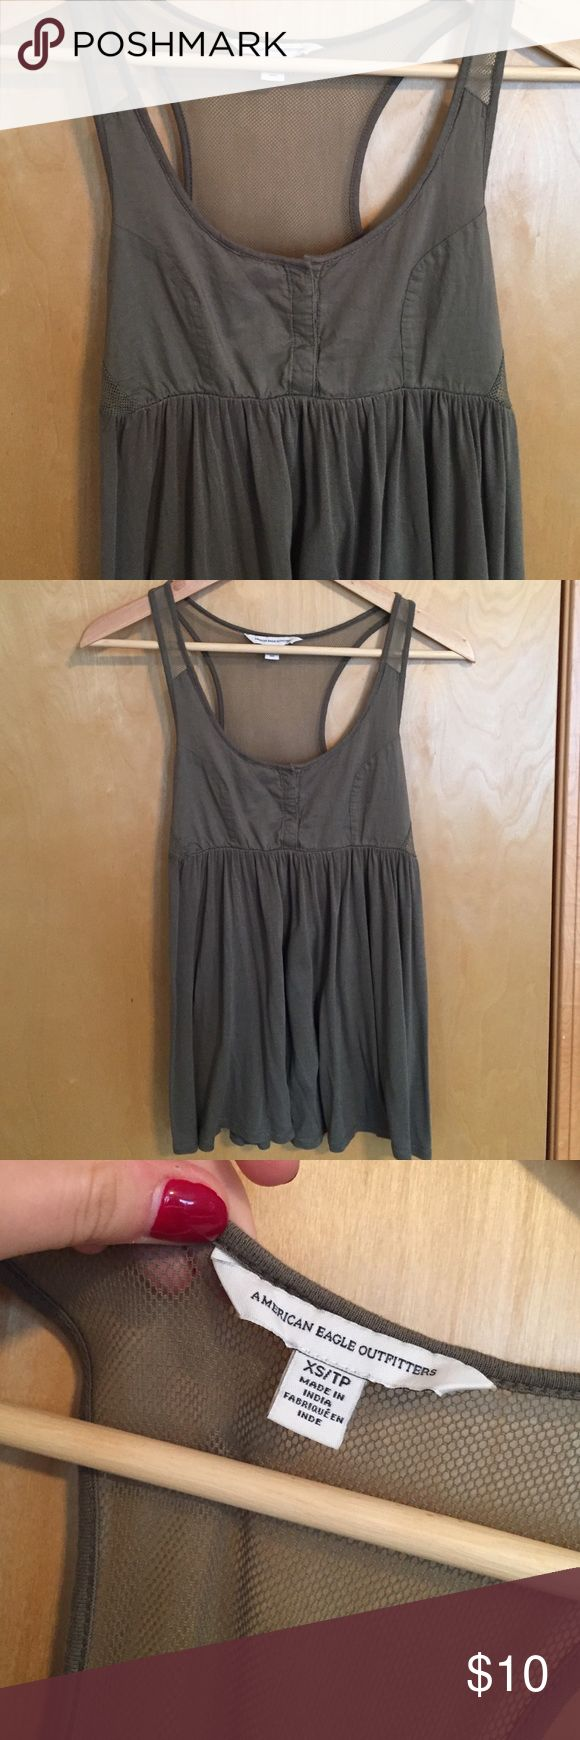 American Eagle olive top American Eagle XS green olive top with mesh back straps. Worn once American Eagle Outfitters Tops Tank Tops